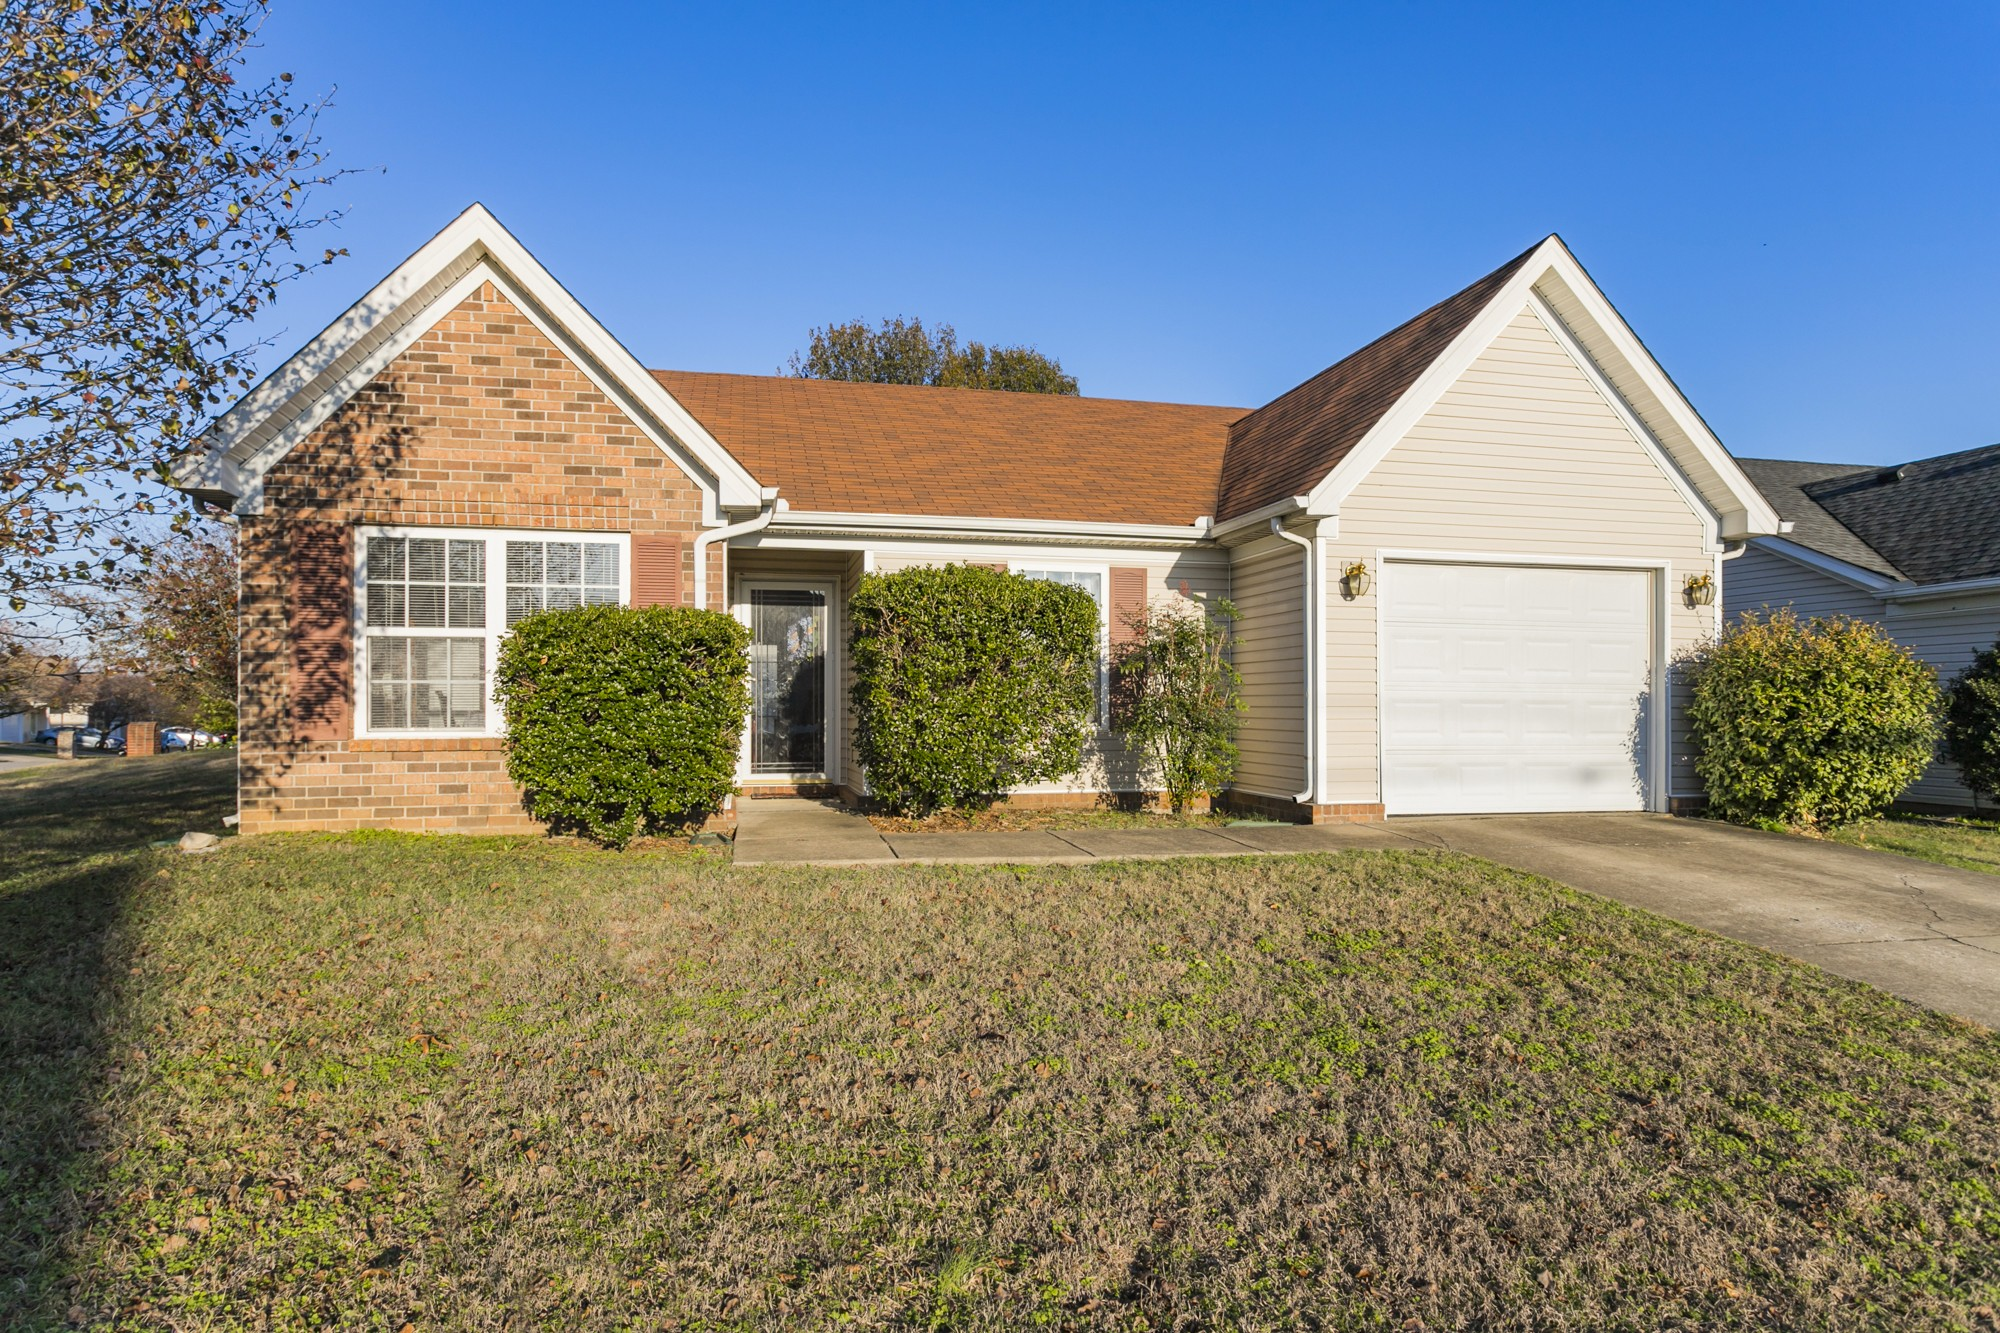 7517 W Winchester Dr, Nashville-Antioch in Davidson County County, TN 37013 Home for Sale